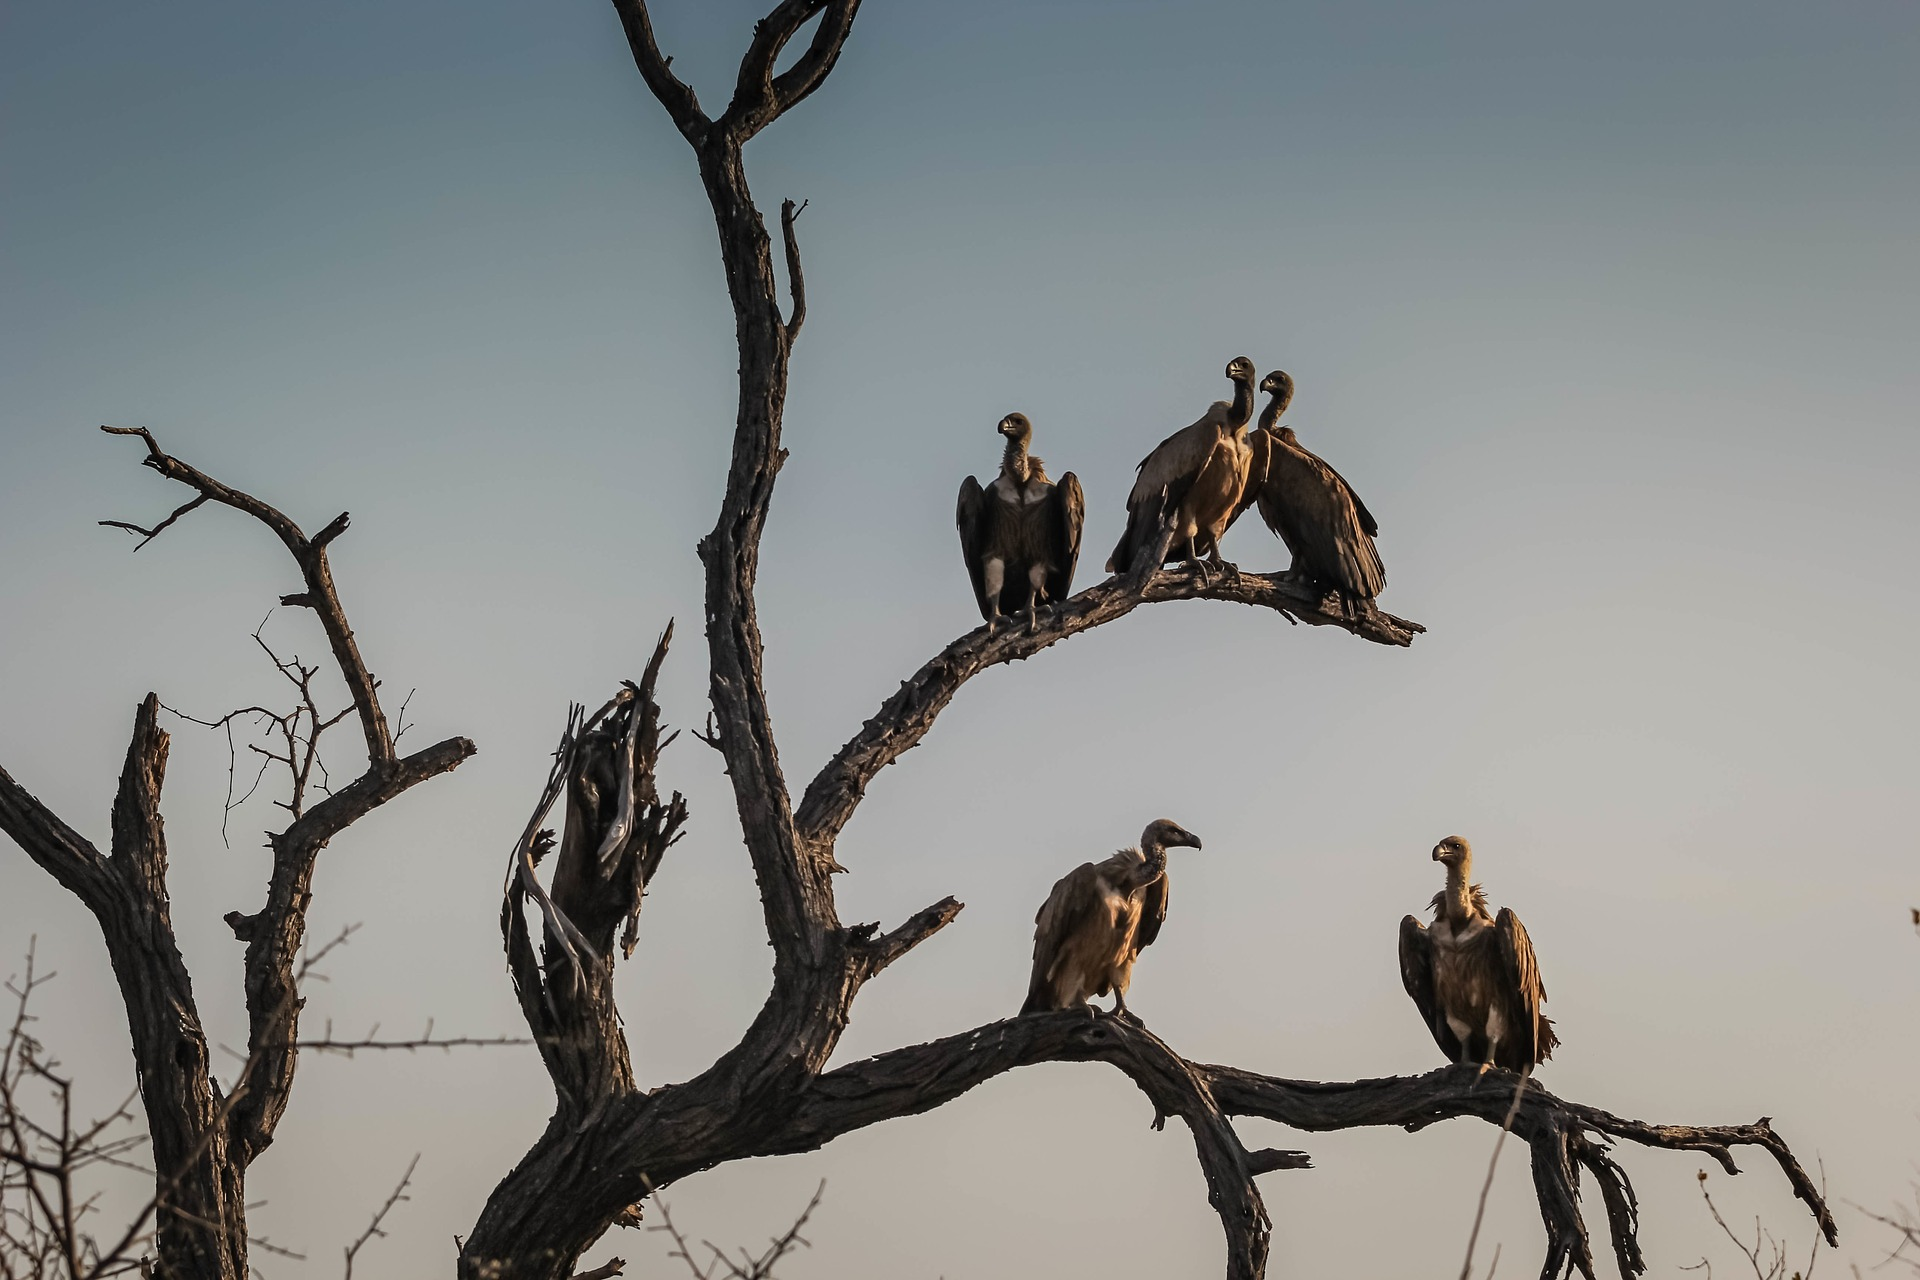 Image of vultures on a tree